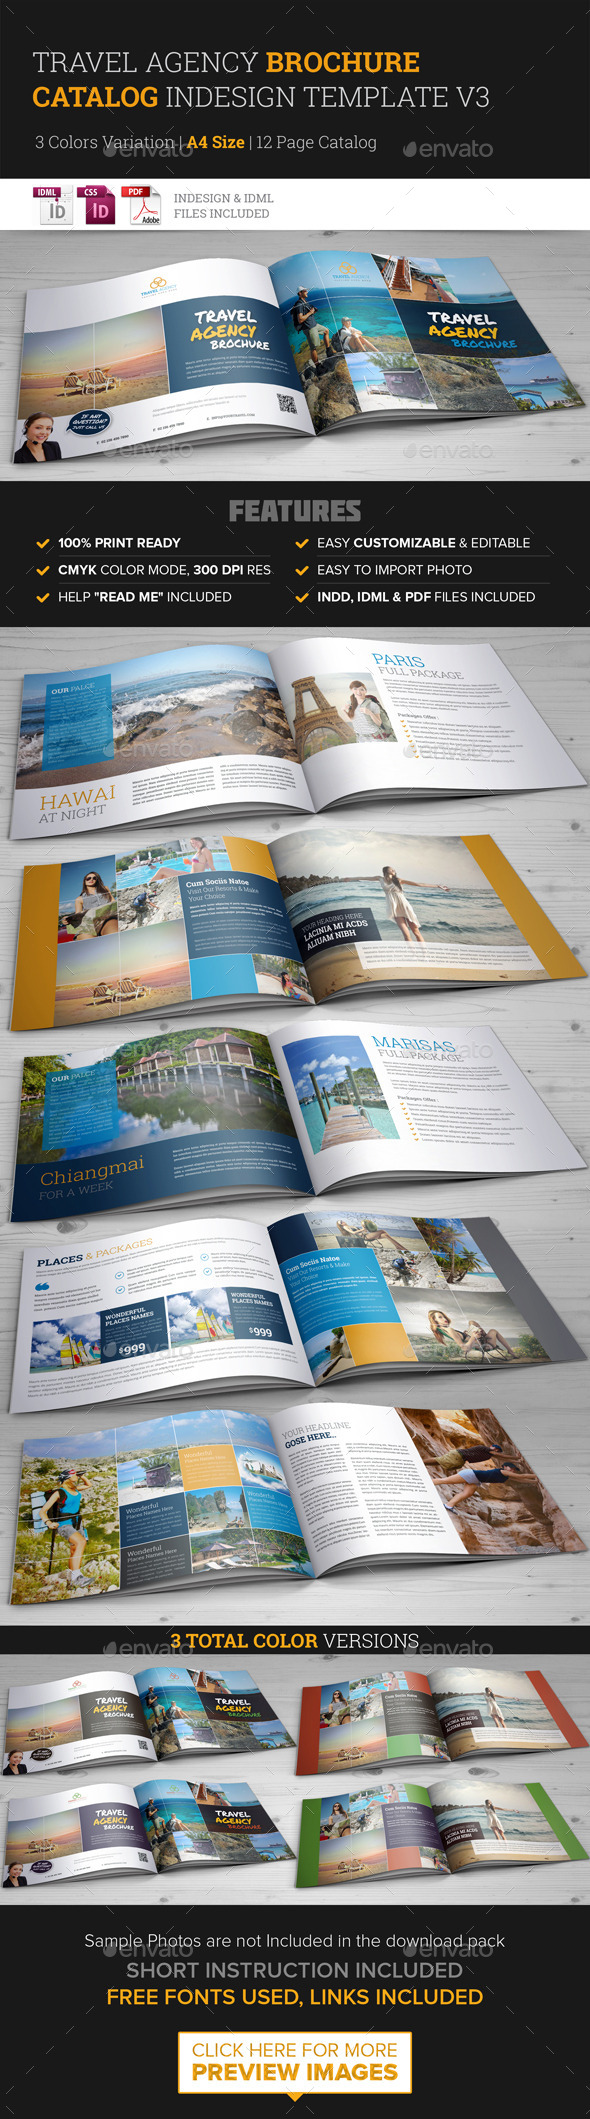 GraphicRiver Travel Agency Brochure Catalog InDesign Template 3 10036706